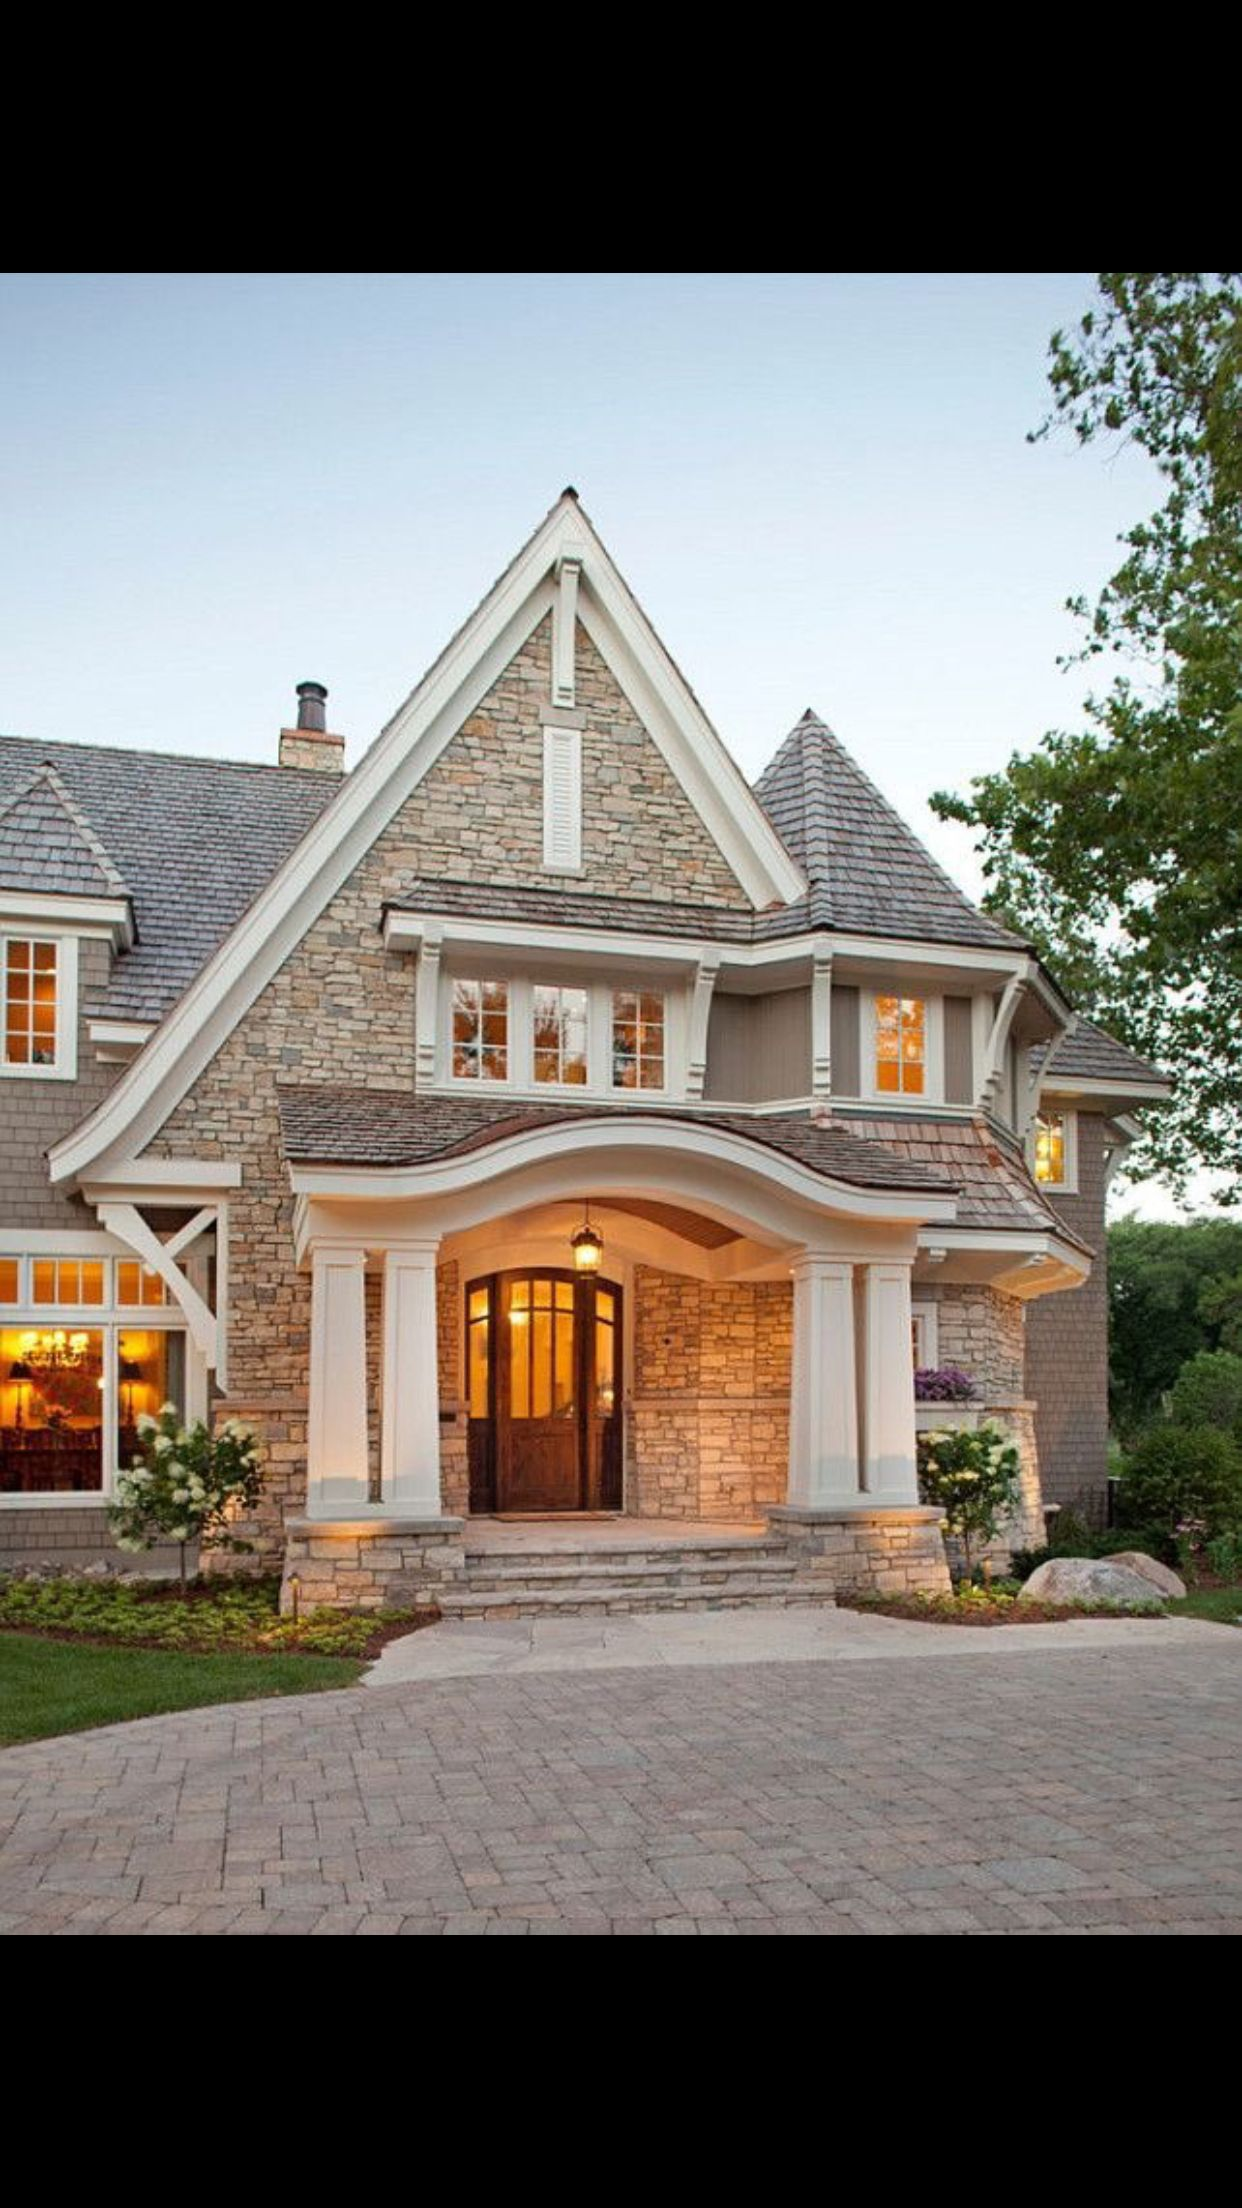 perfect stone exterior houseslarge homes exteriorbrick home exteriorsluxury - Luxury Homes Exterior Brick